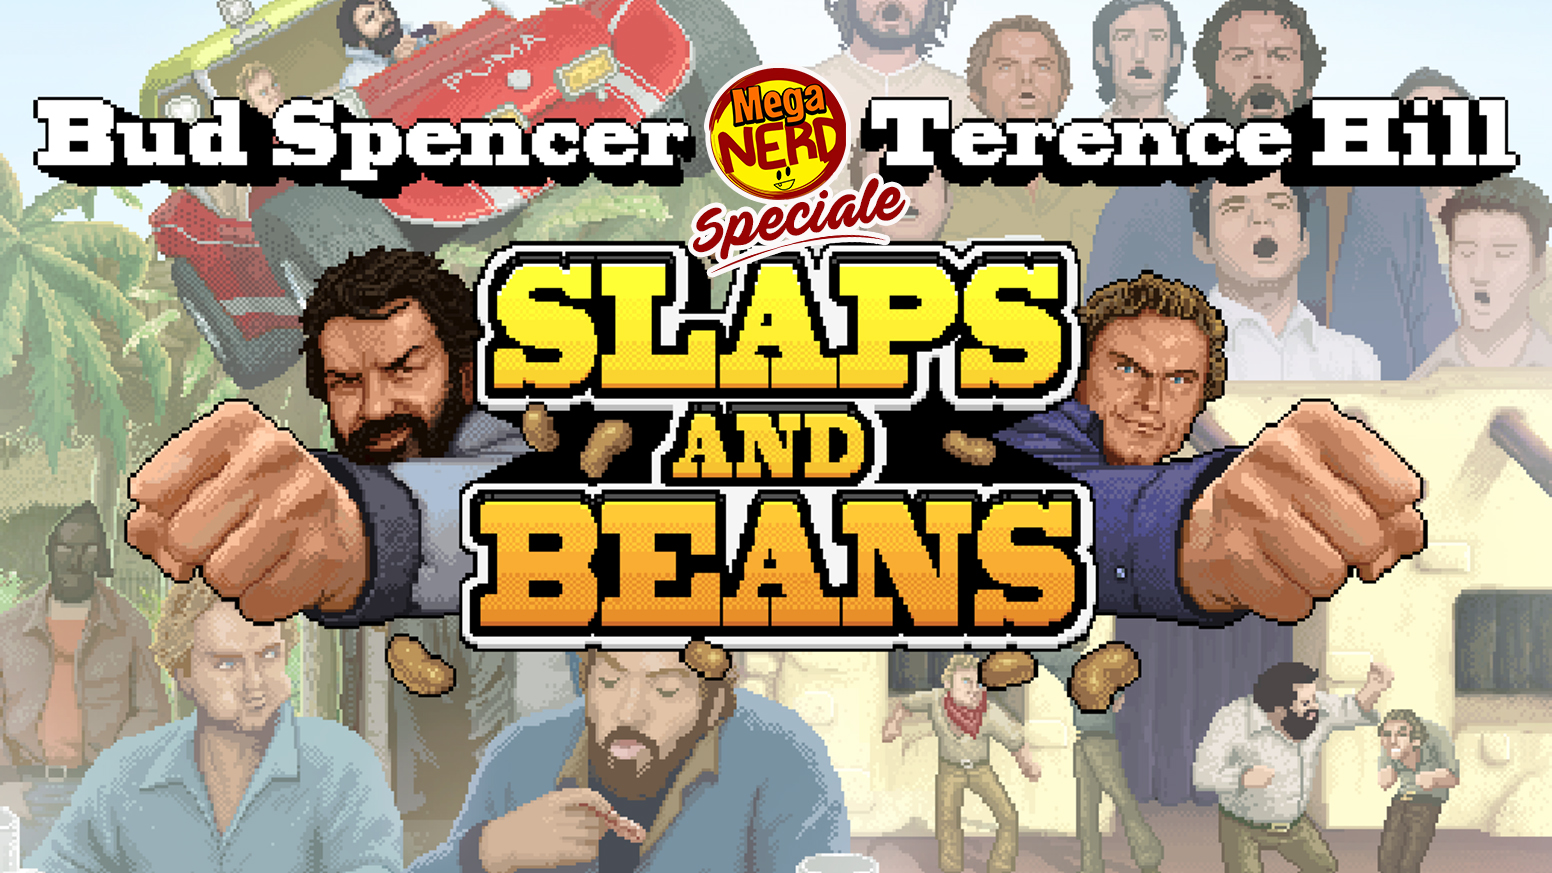 Ecco Slaps and Beans, il videogioco dedicato a Bud Spencer & Terence Hill